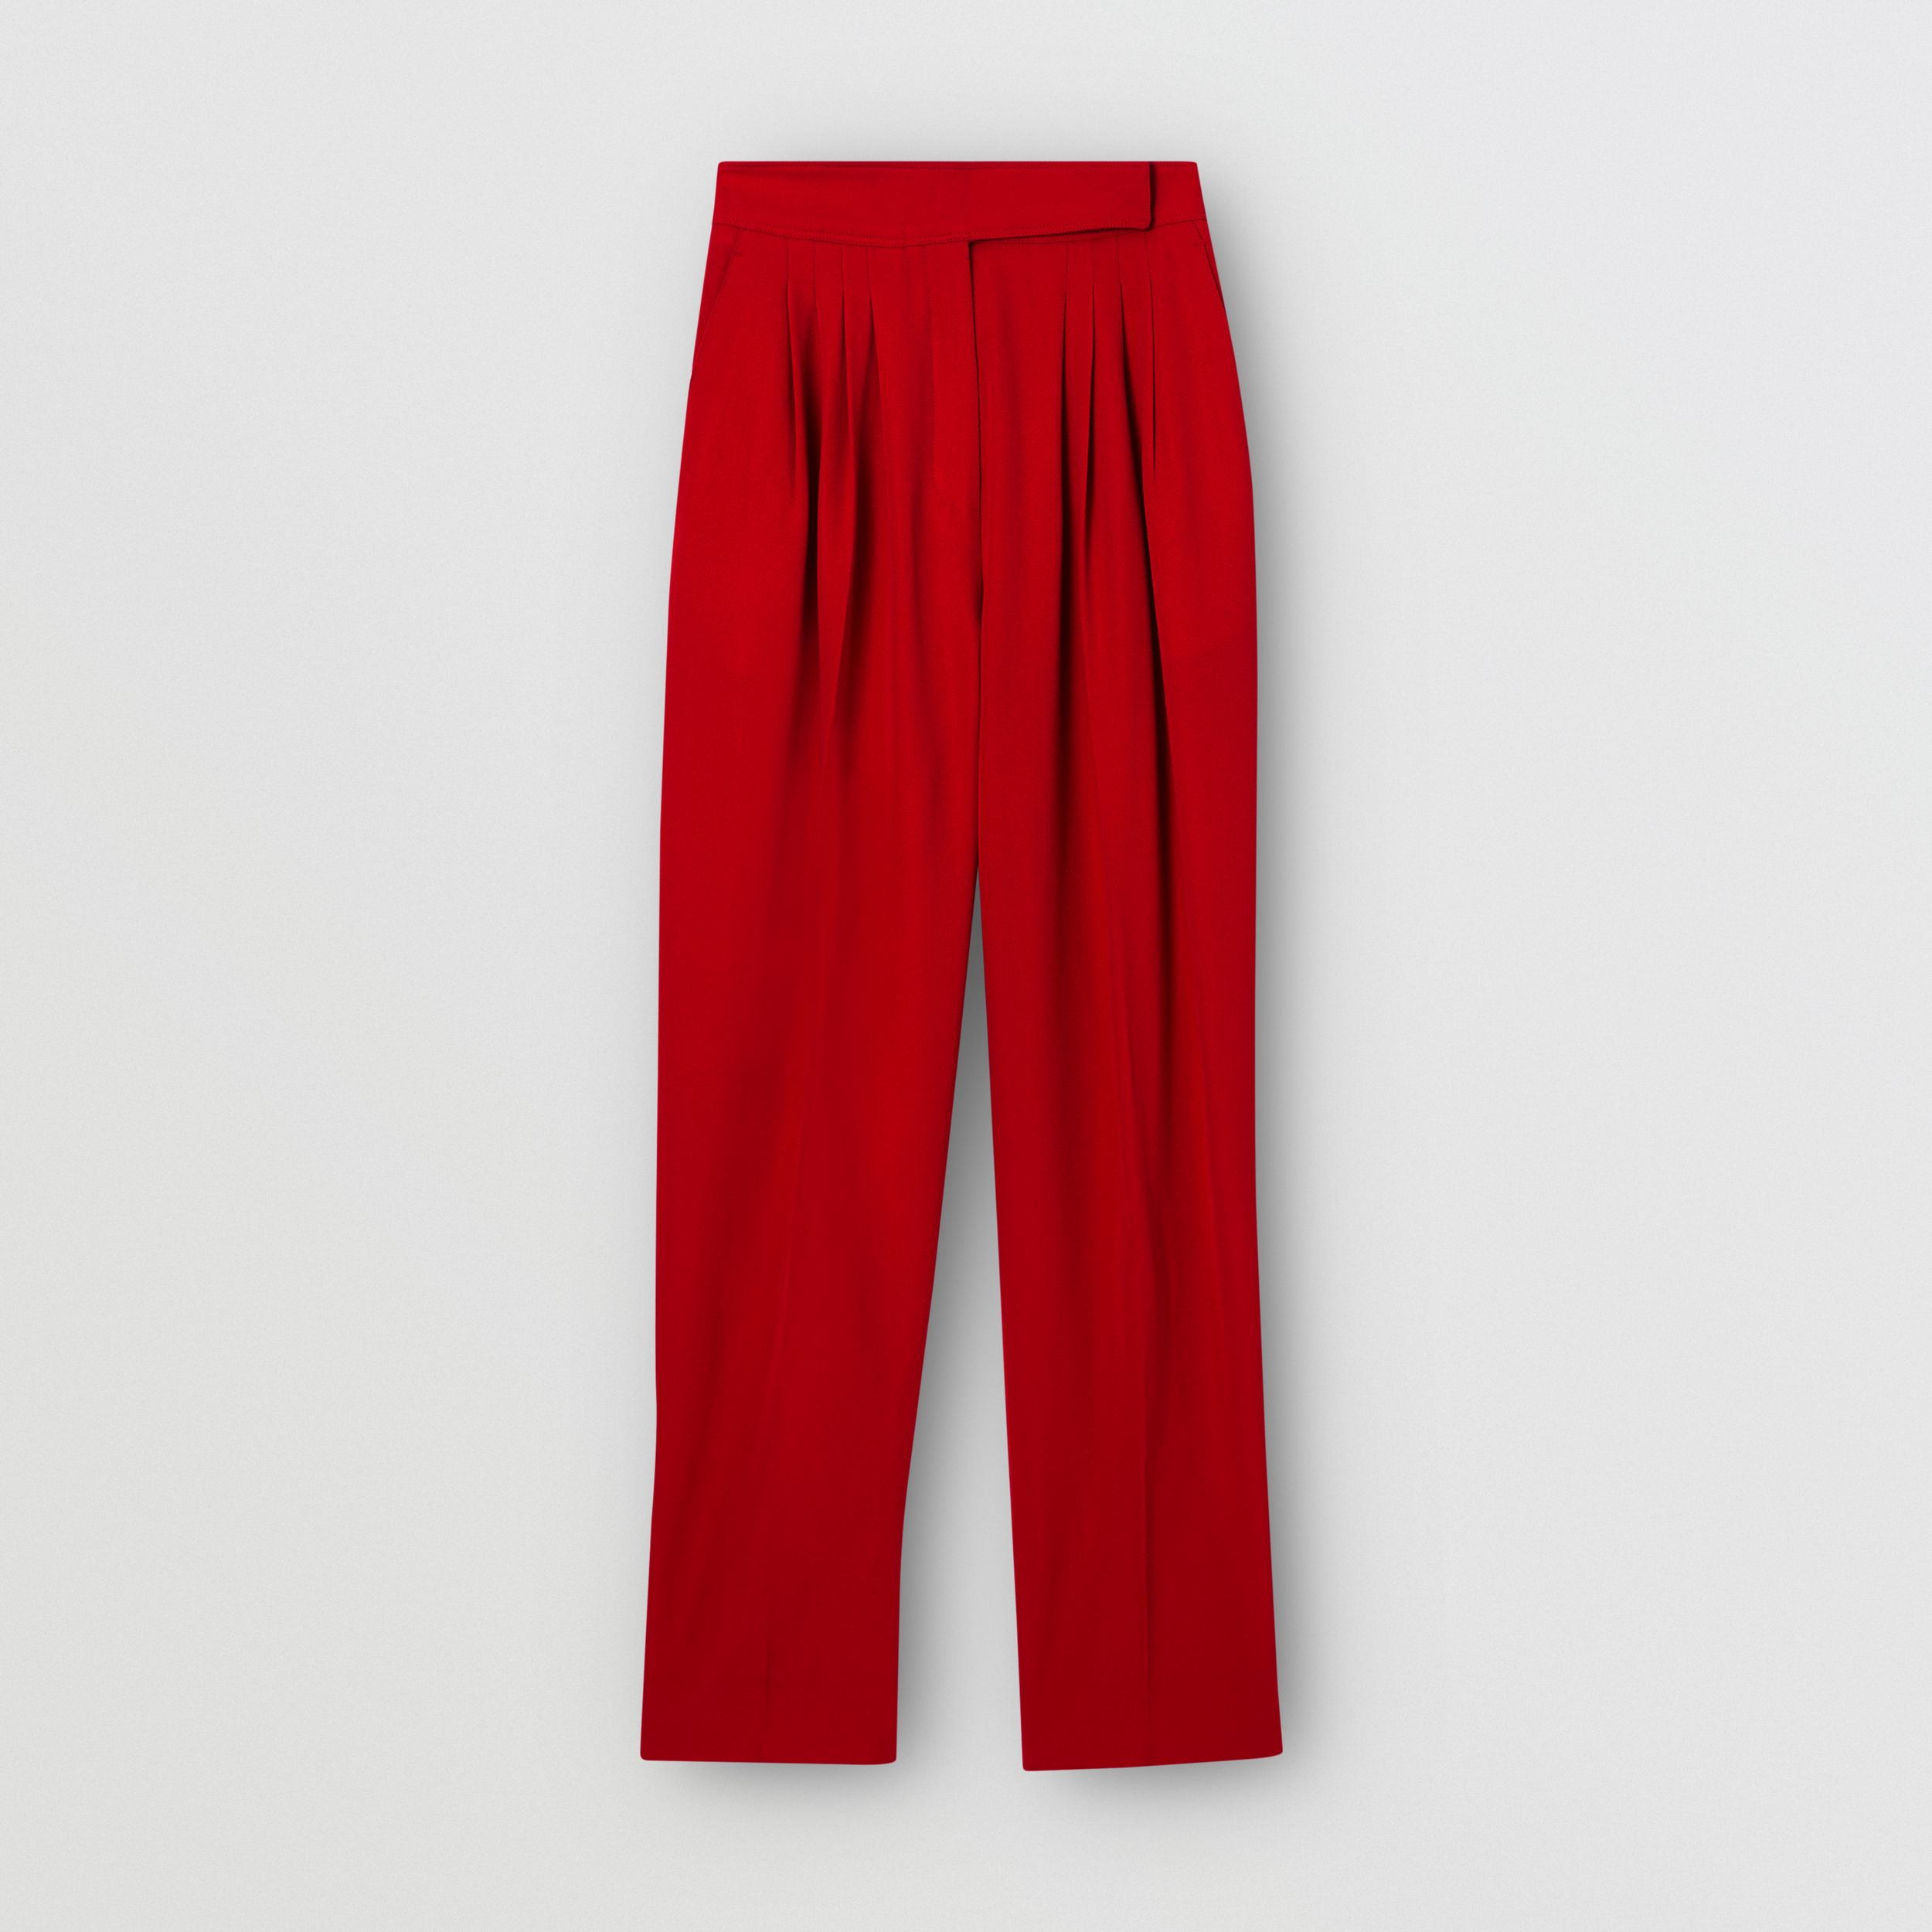 Pleat Detail Wool Tailored Trousers in Bright Red - Women | Burberry - 4